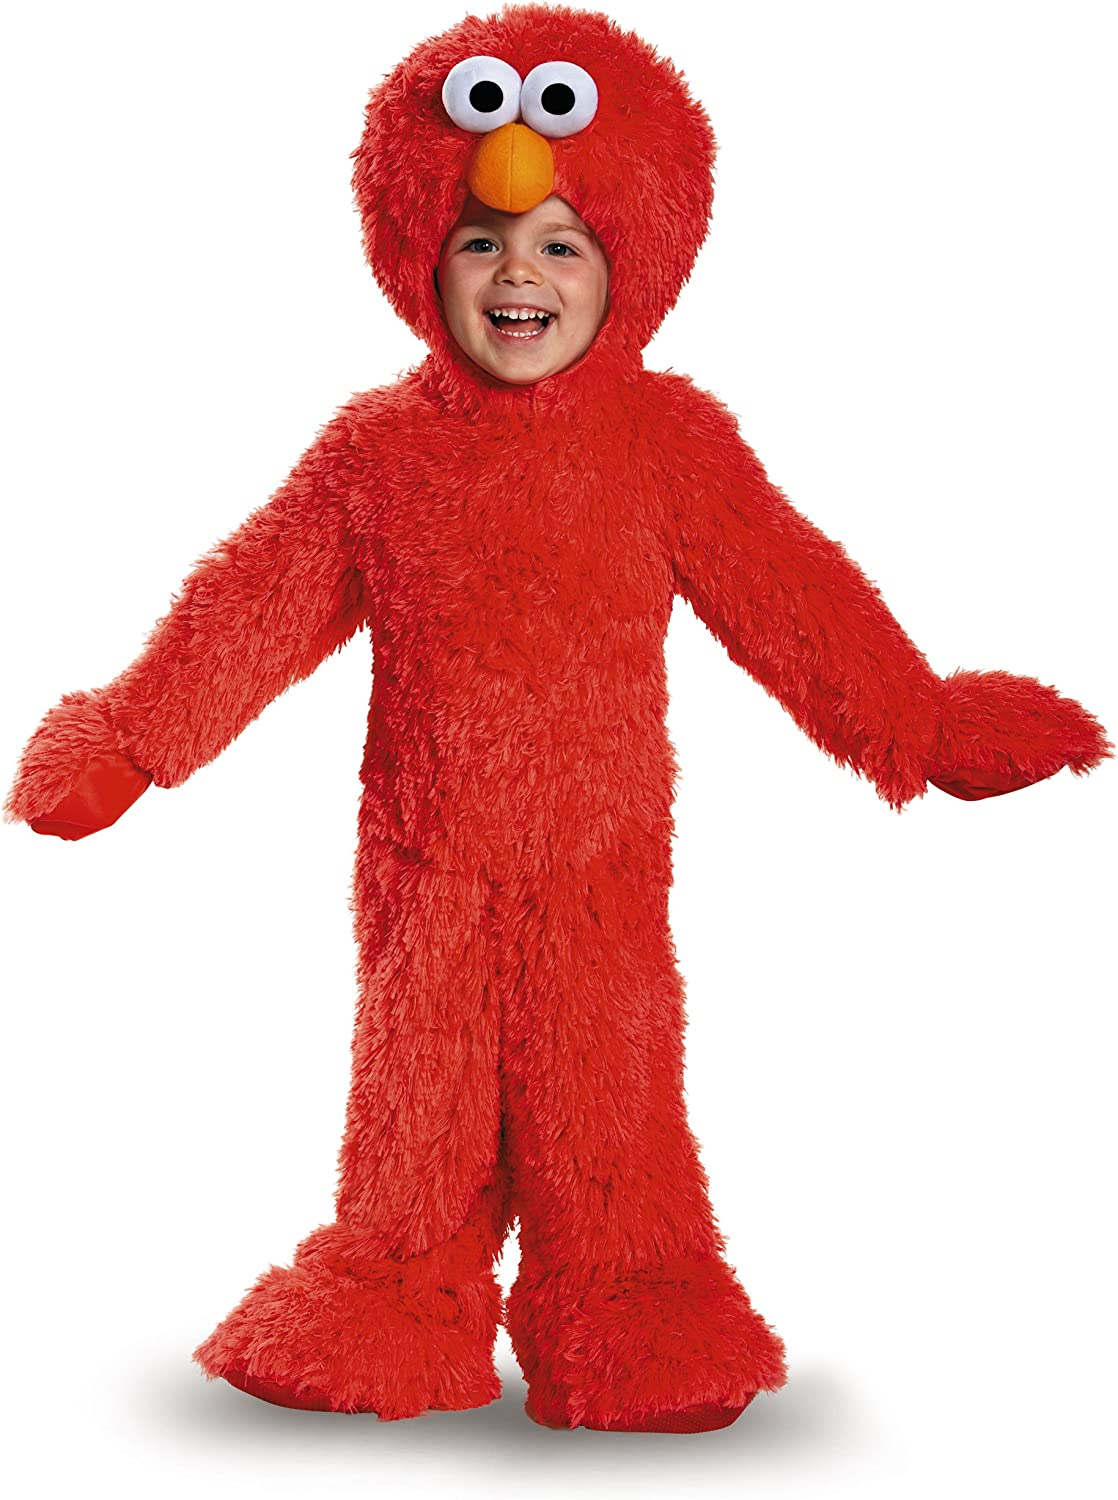 Disguise 76876W Elmo Extra Deluxe Plush Costume, (12-18 Months) by ...